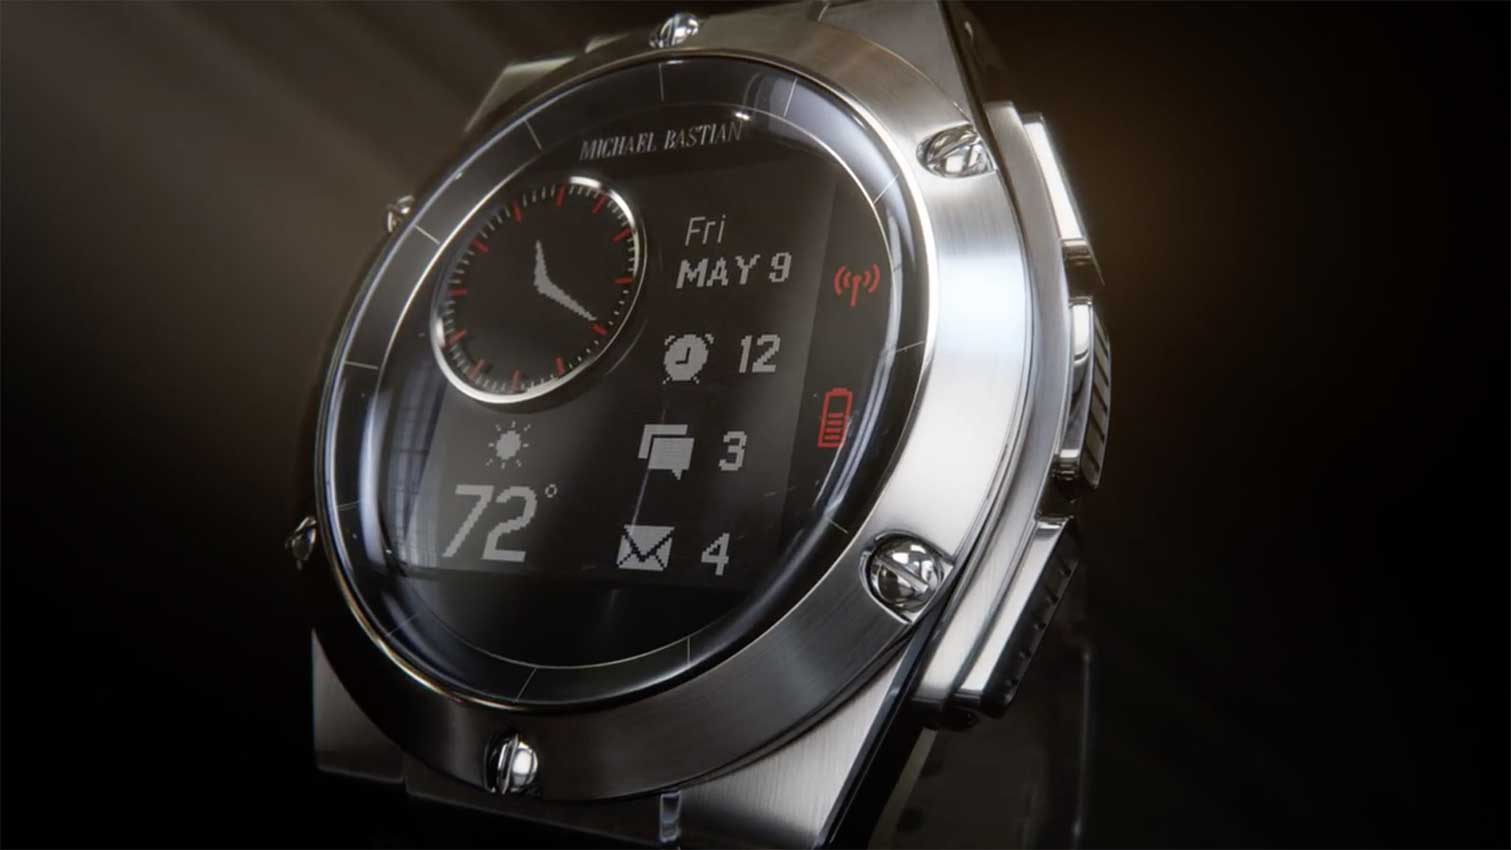 Chronowing-Smartwatch